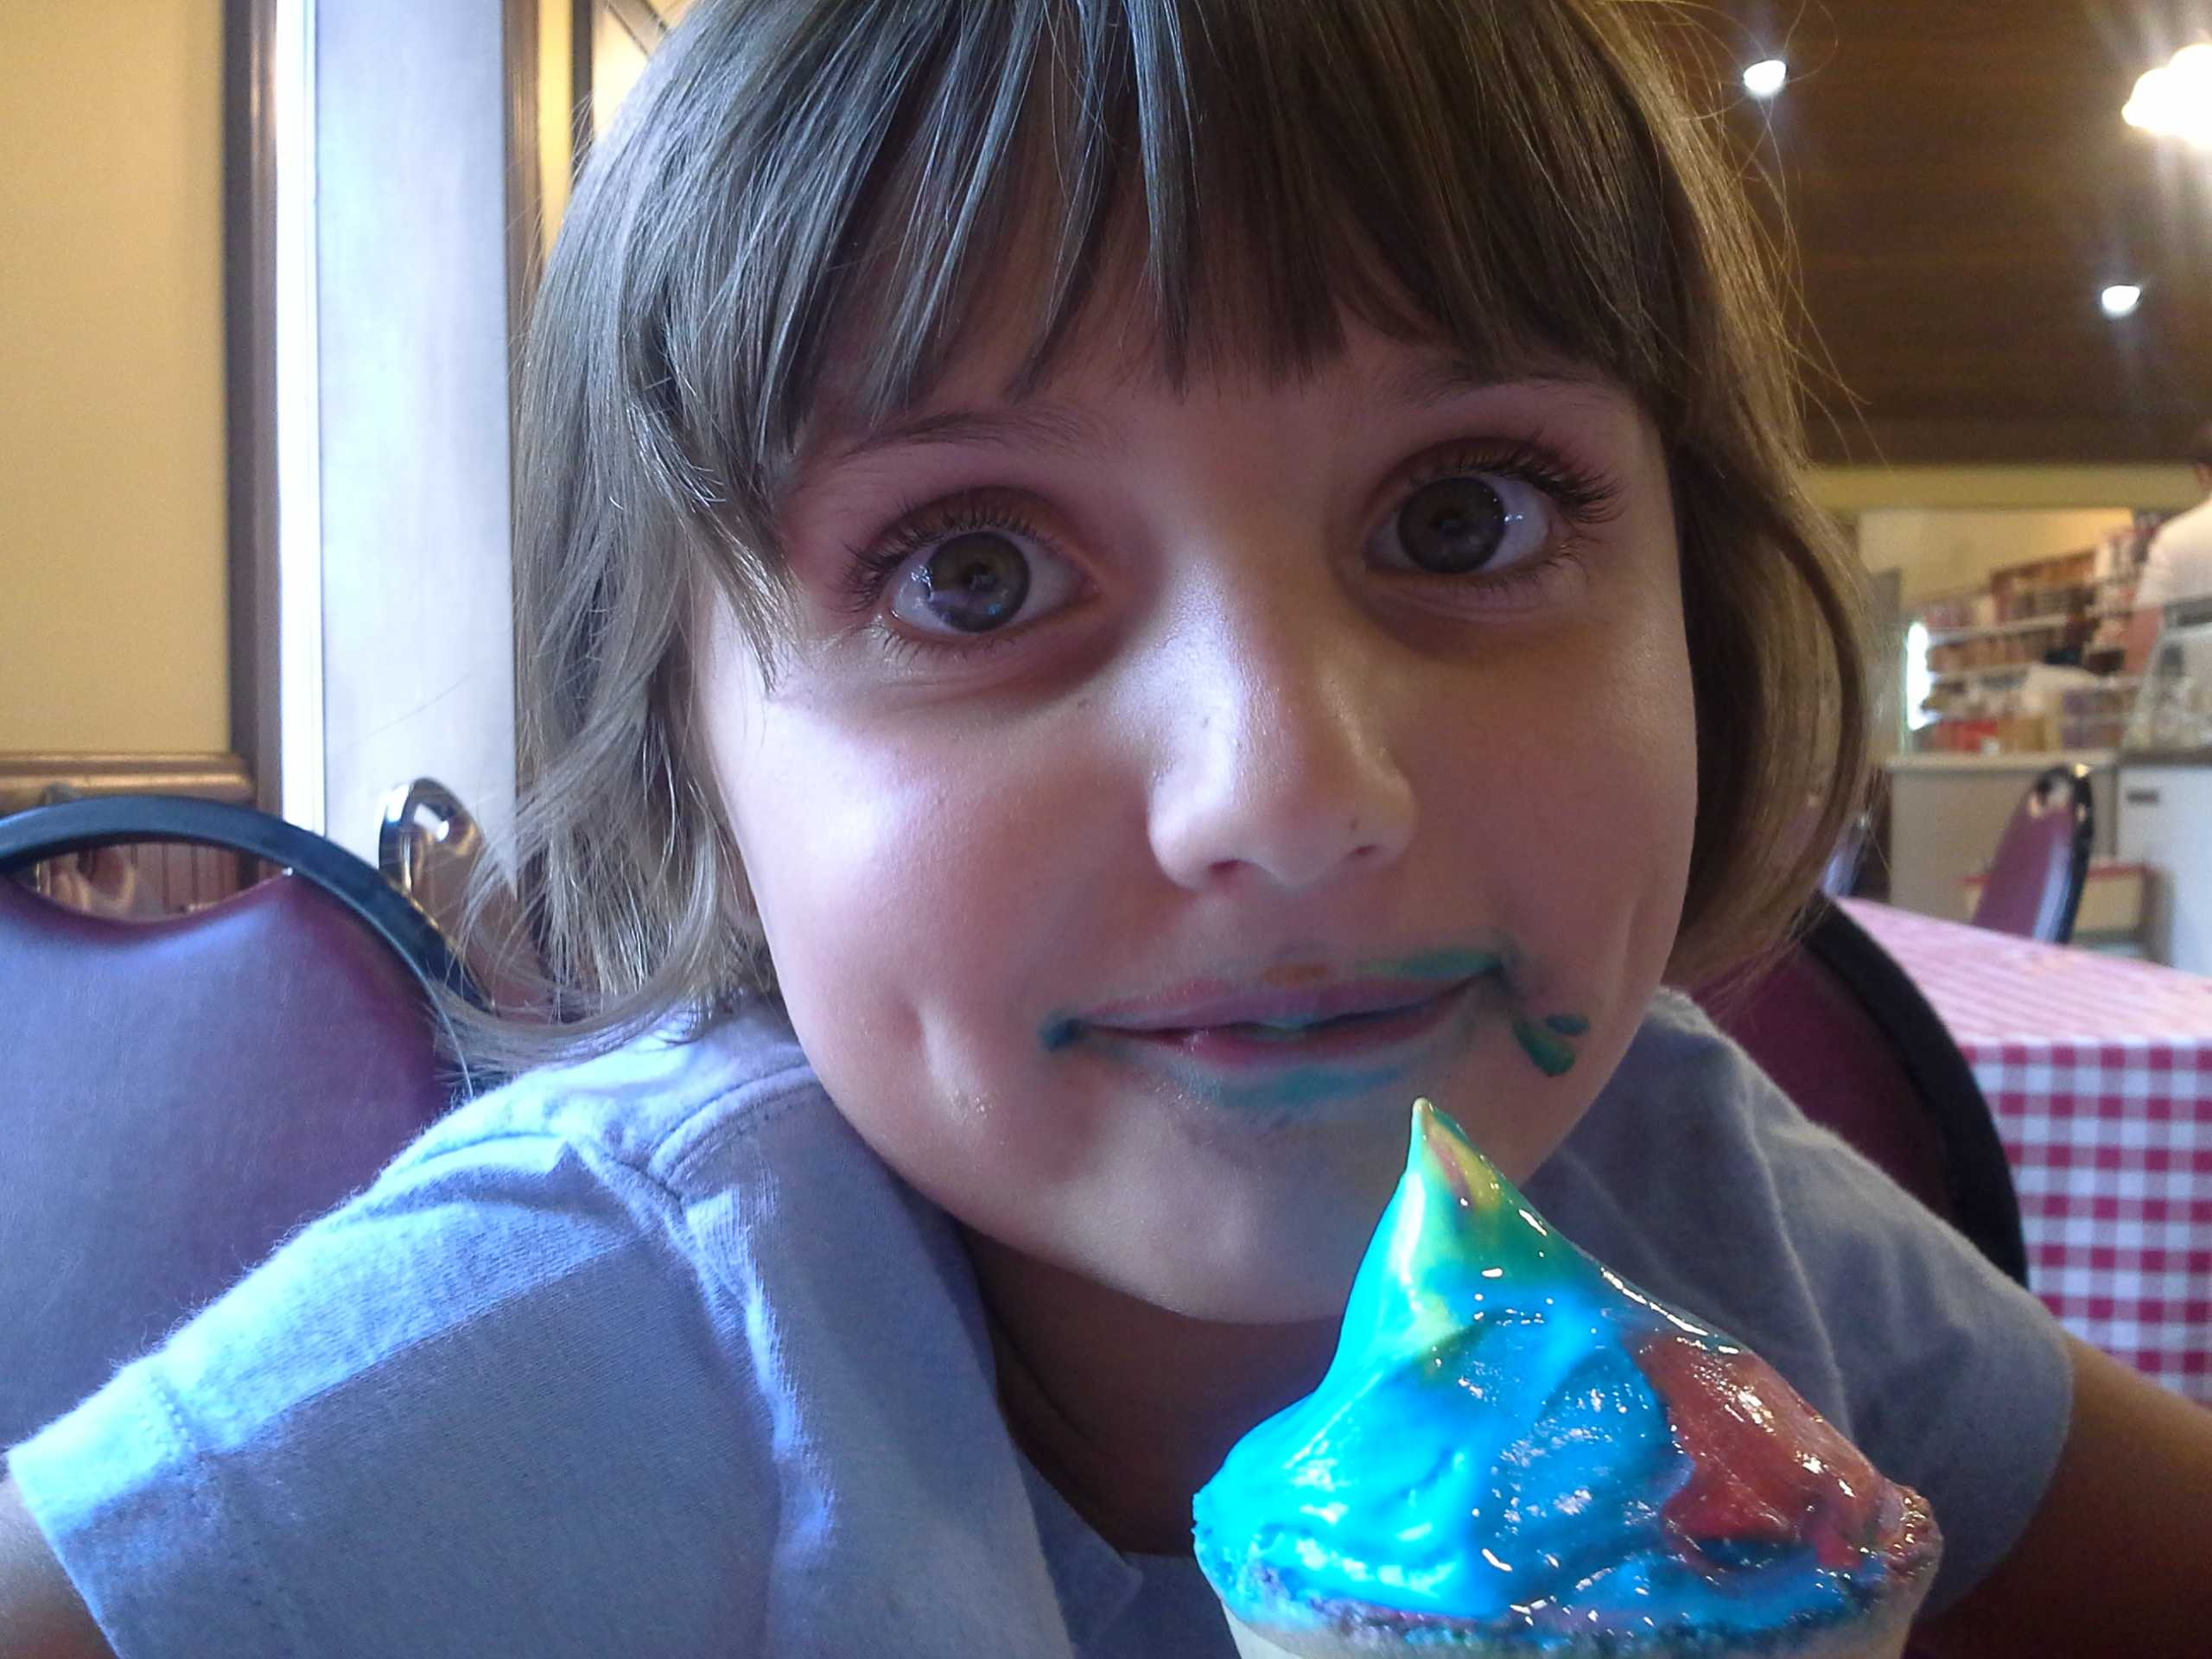 Chloe ice cream